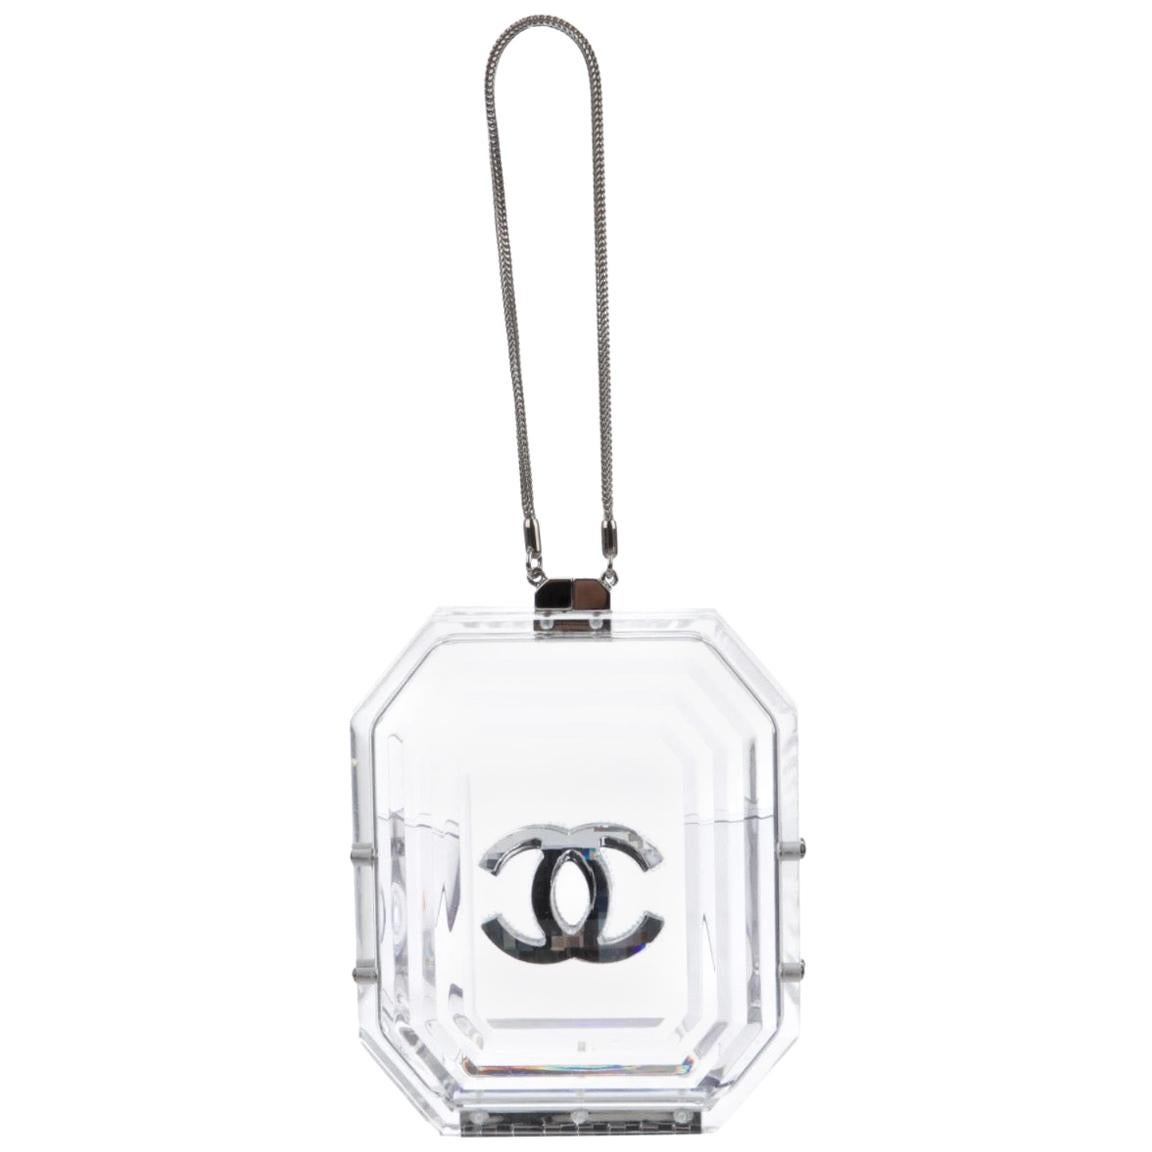 Chanel Runway Small Clear Acrylic Silver Leather Evening Clutch Shoulder Bag